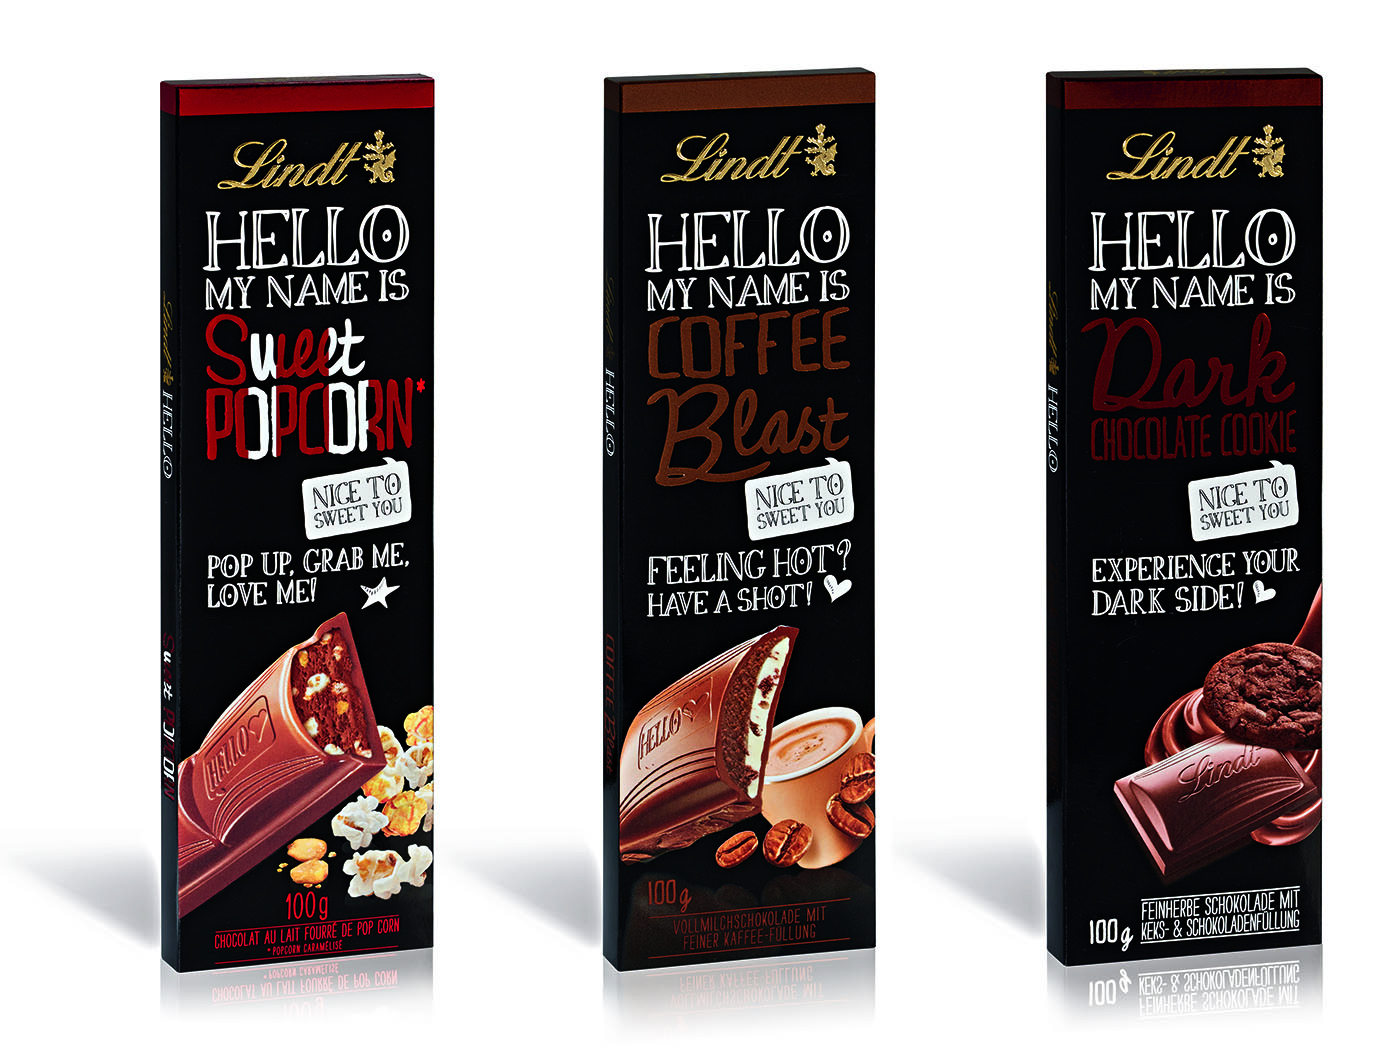 LINDT HELLO Sweet Popcorn, Coffee Blast and Dark Chocolate Cookie (100g slab) Image courtesy of LINDT